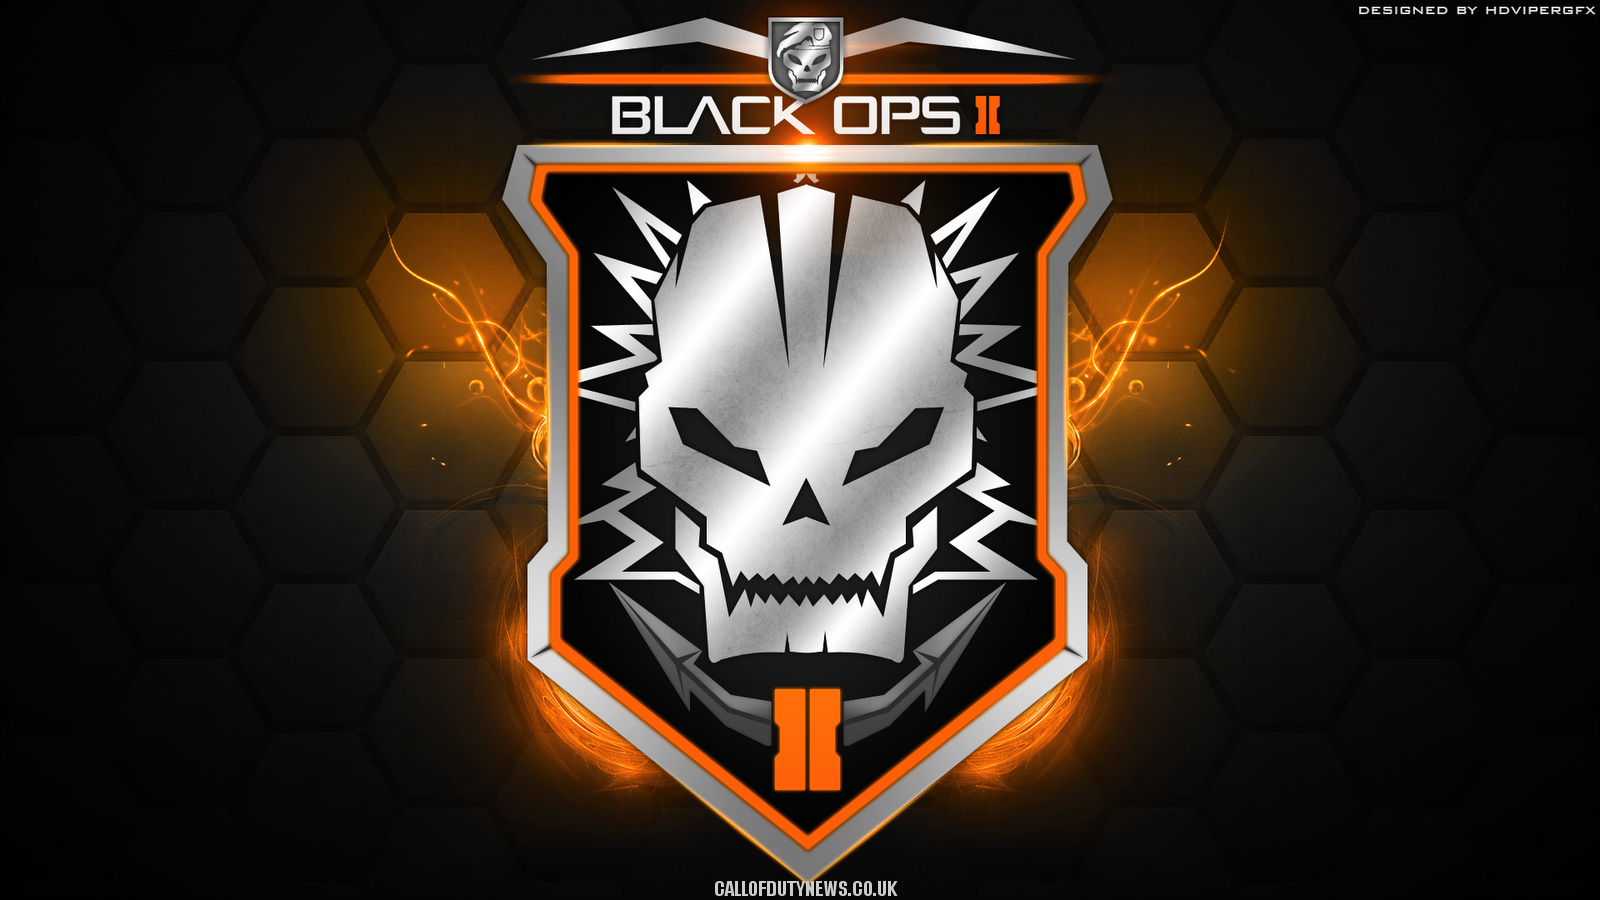 <b>Black Ops 2 Wallpaper</b> - WallpaperSafari